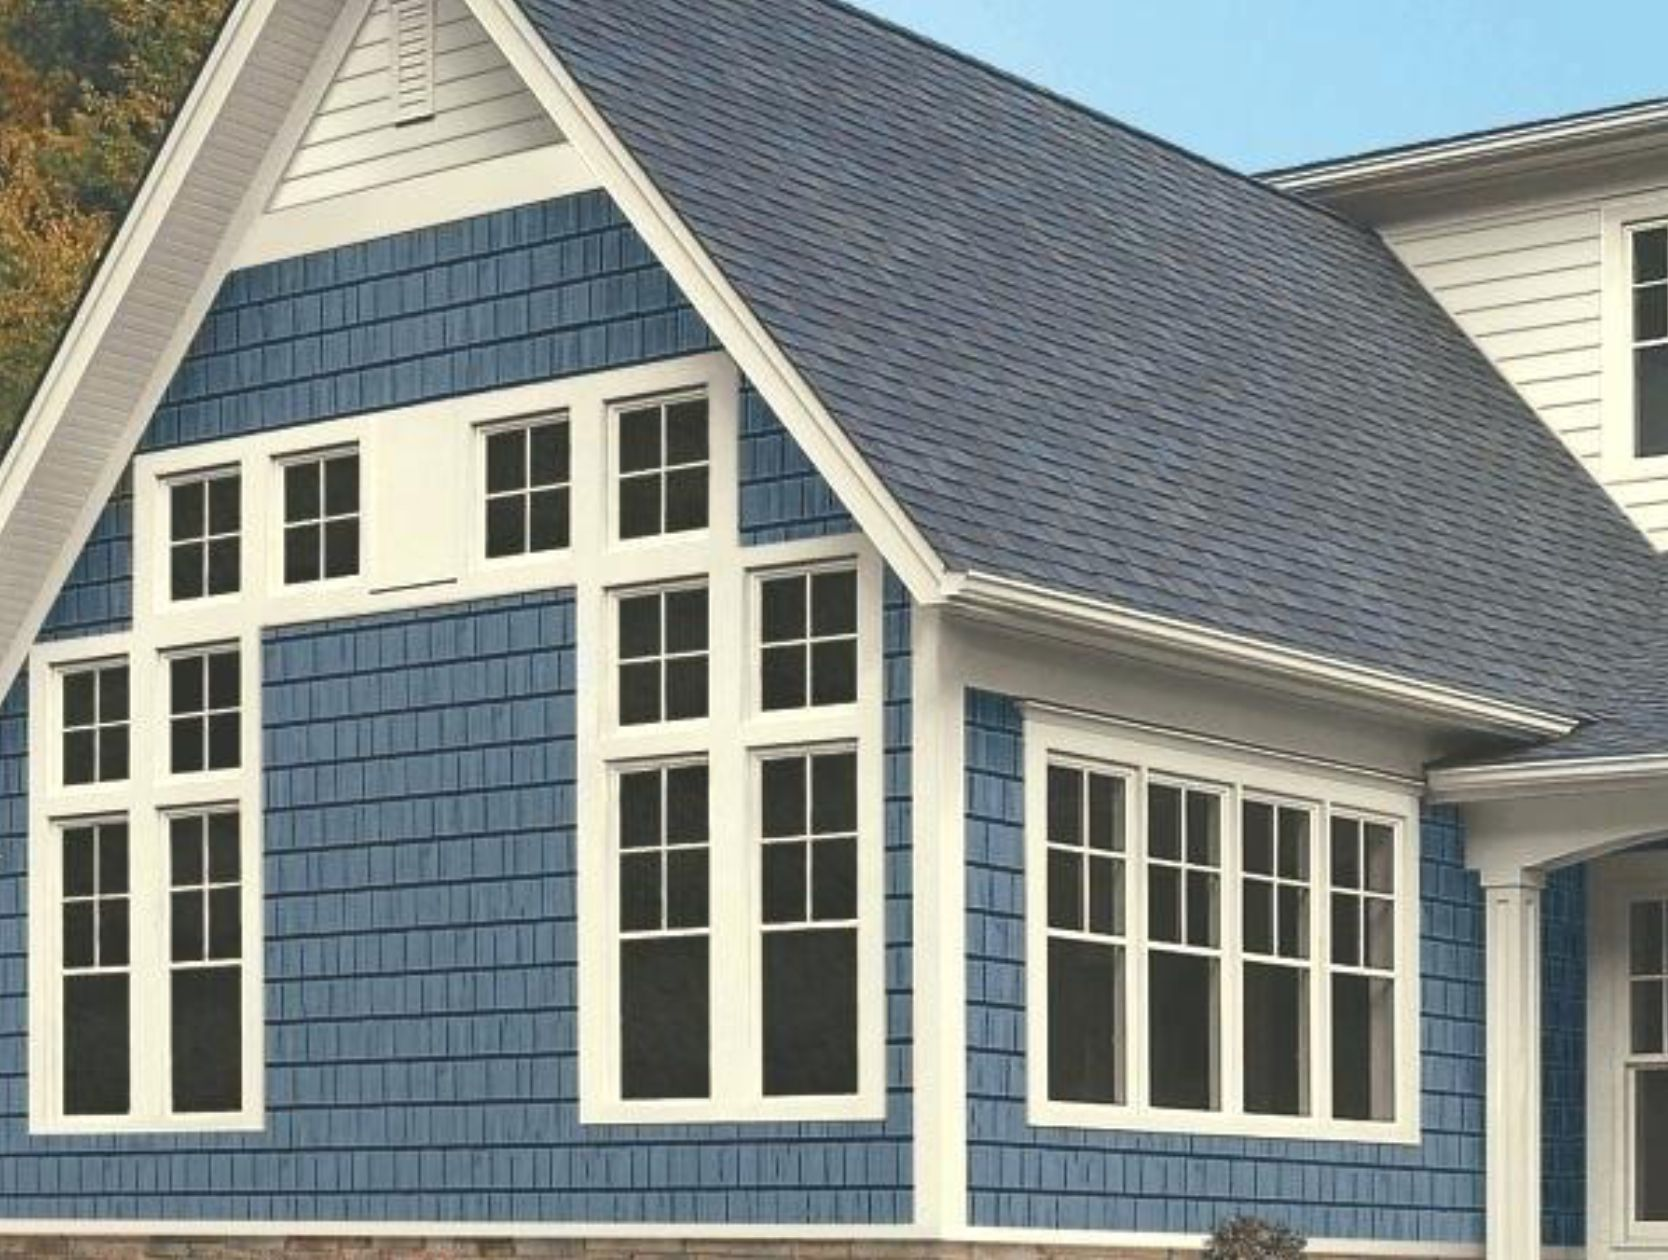 Pin By A House Of Bees On Virginia Exterior Shingle Siding House Paint Exterior Shingle House